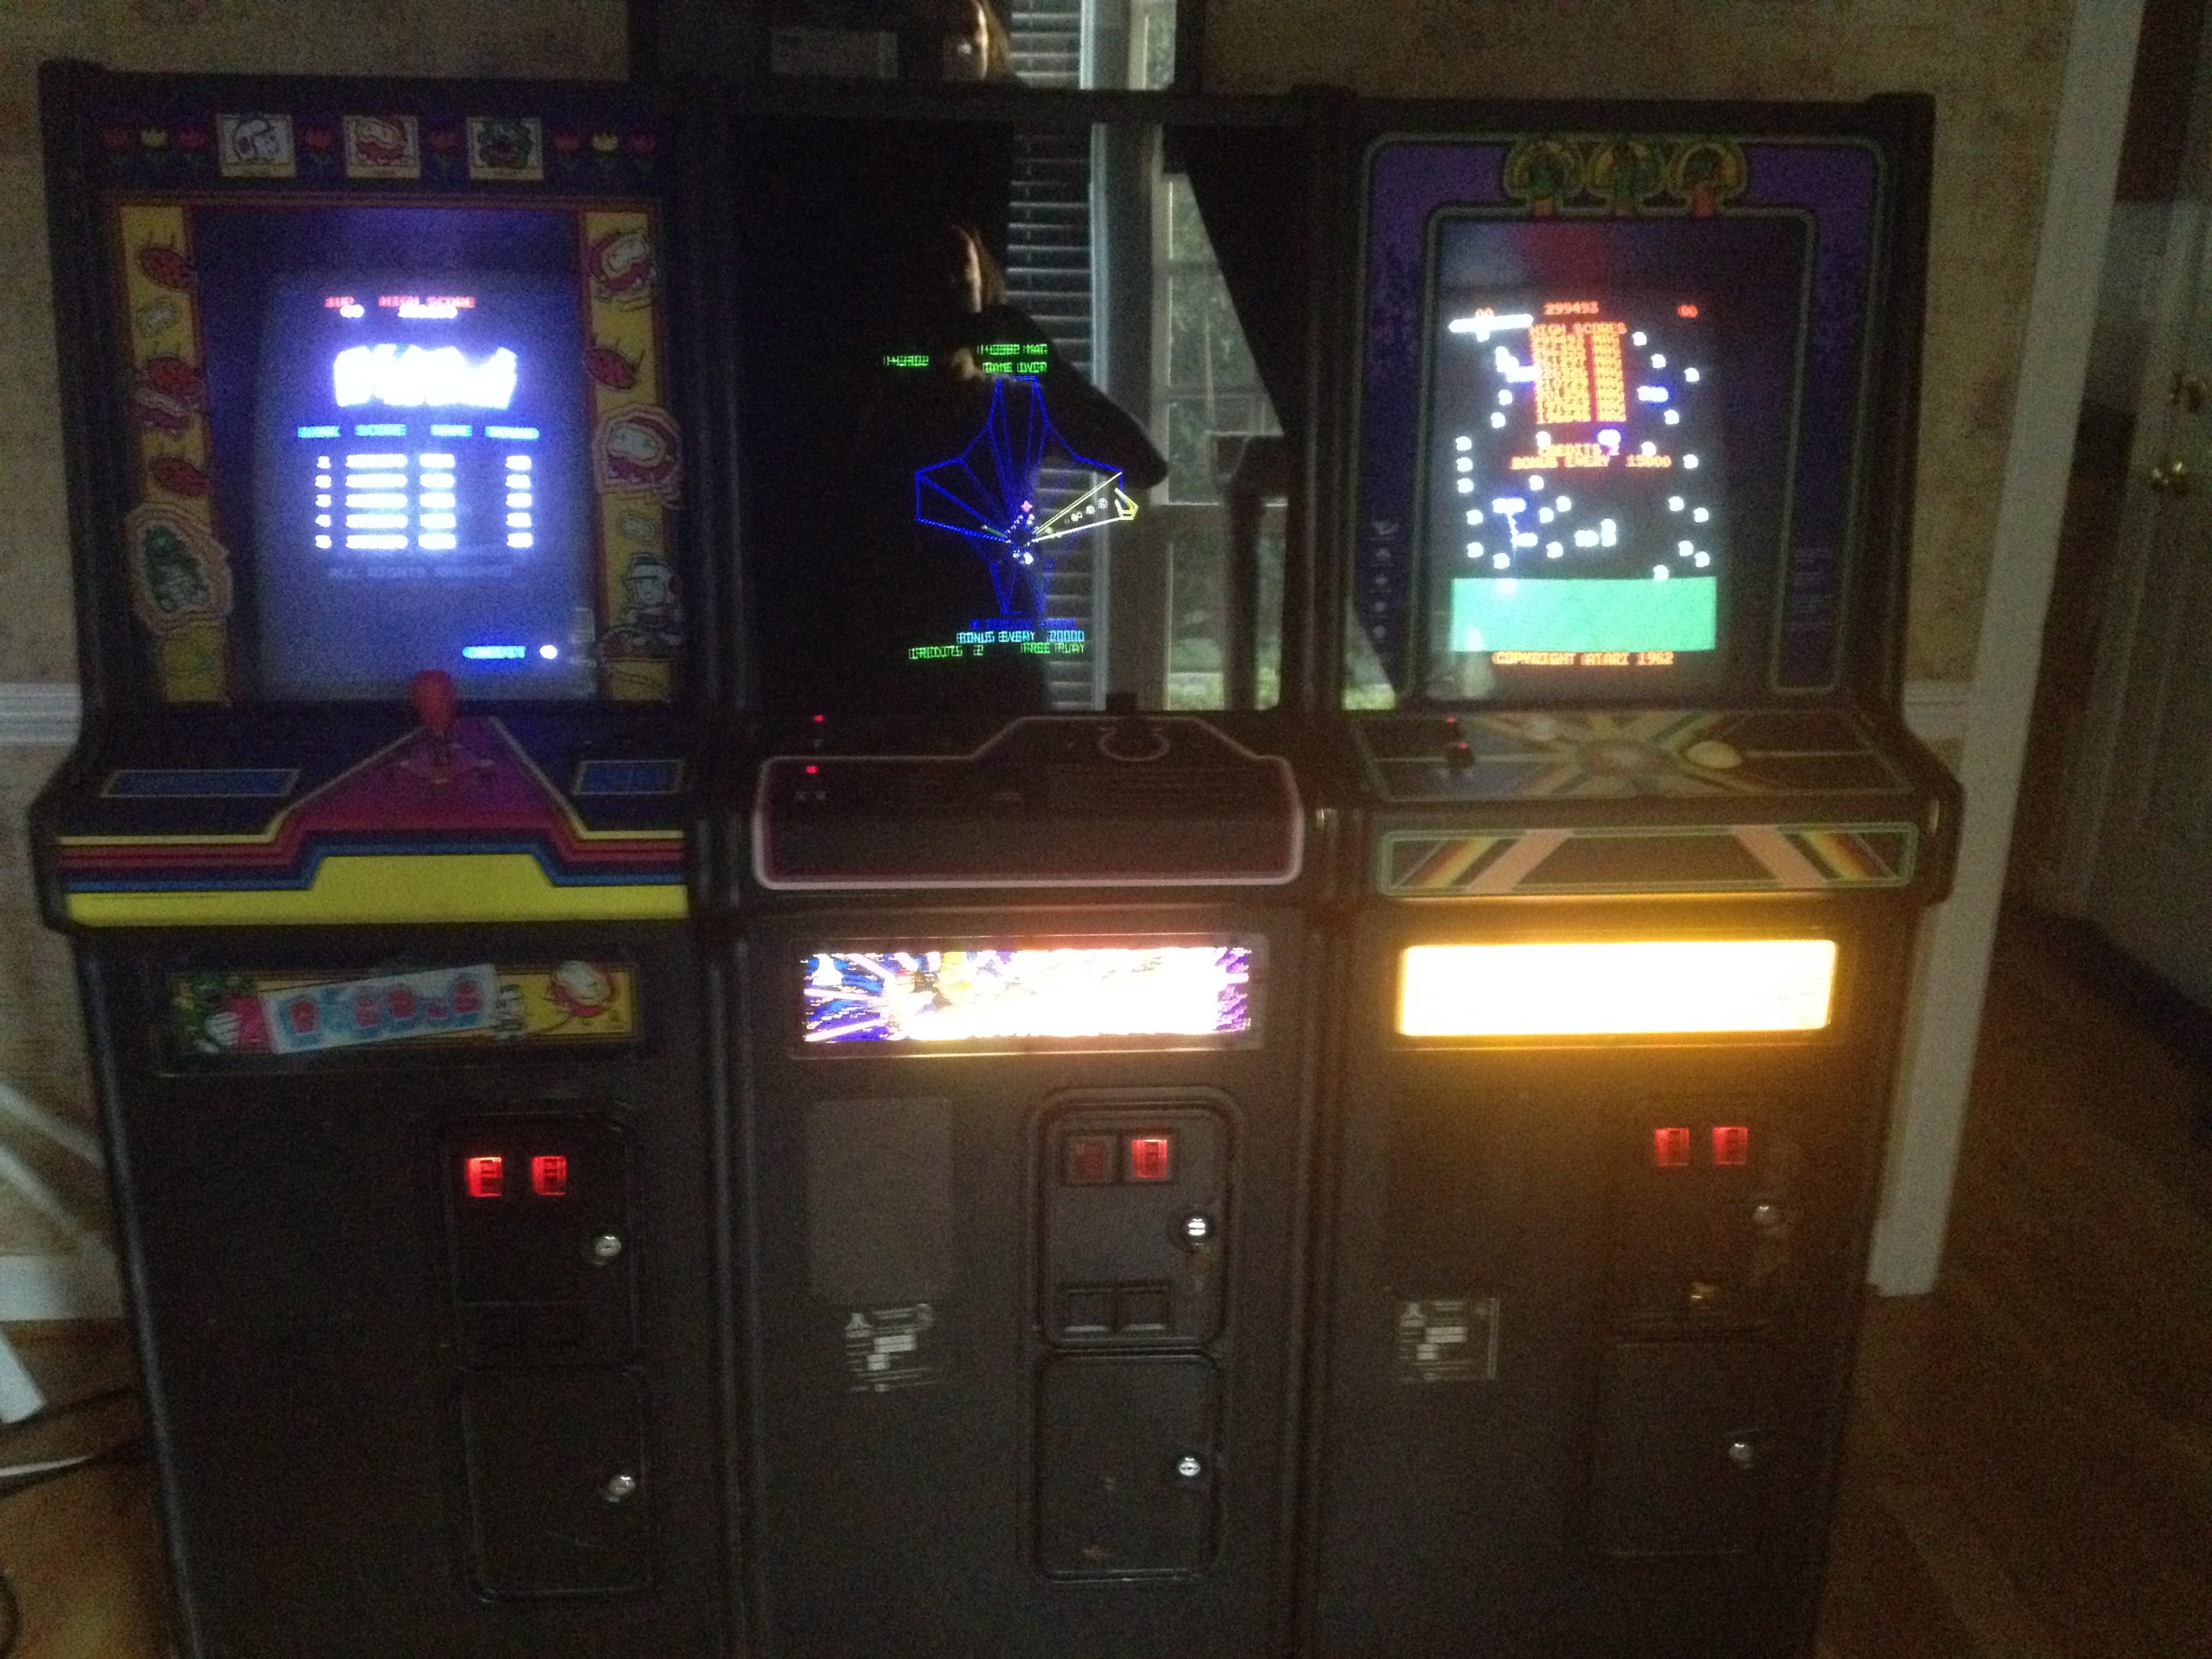 Magpie: Millipede (Arcade) 299,493 points on 2014-06-09 19:13:52